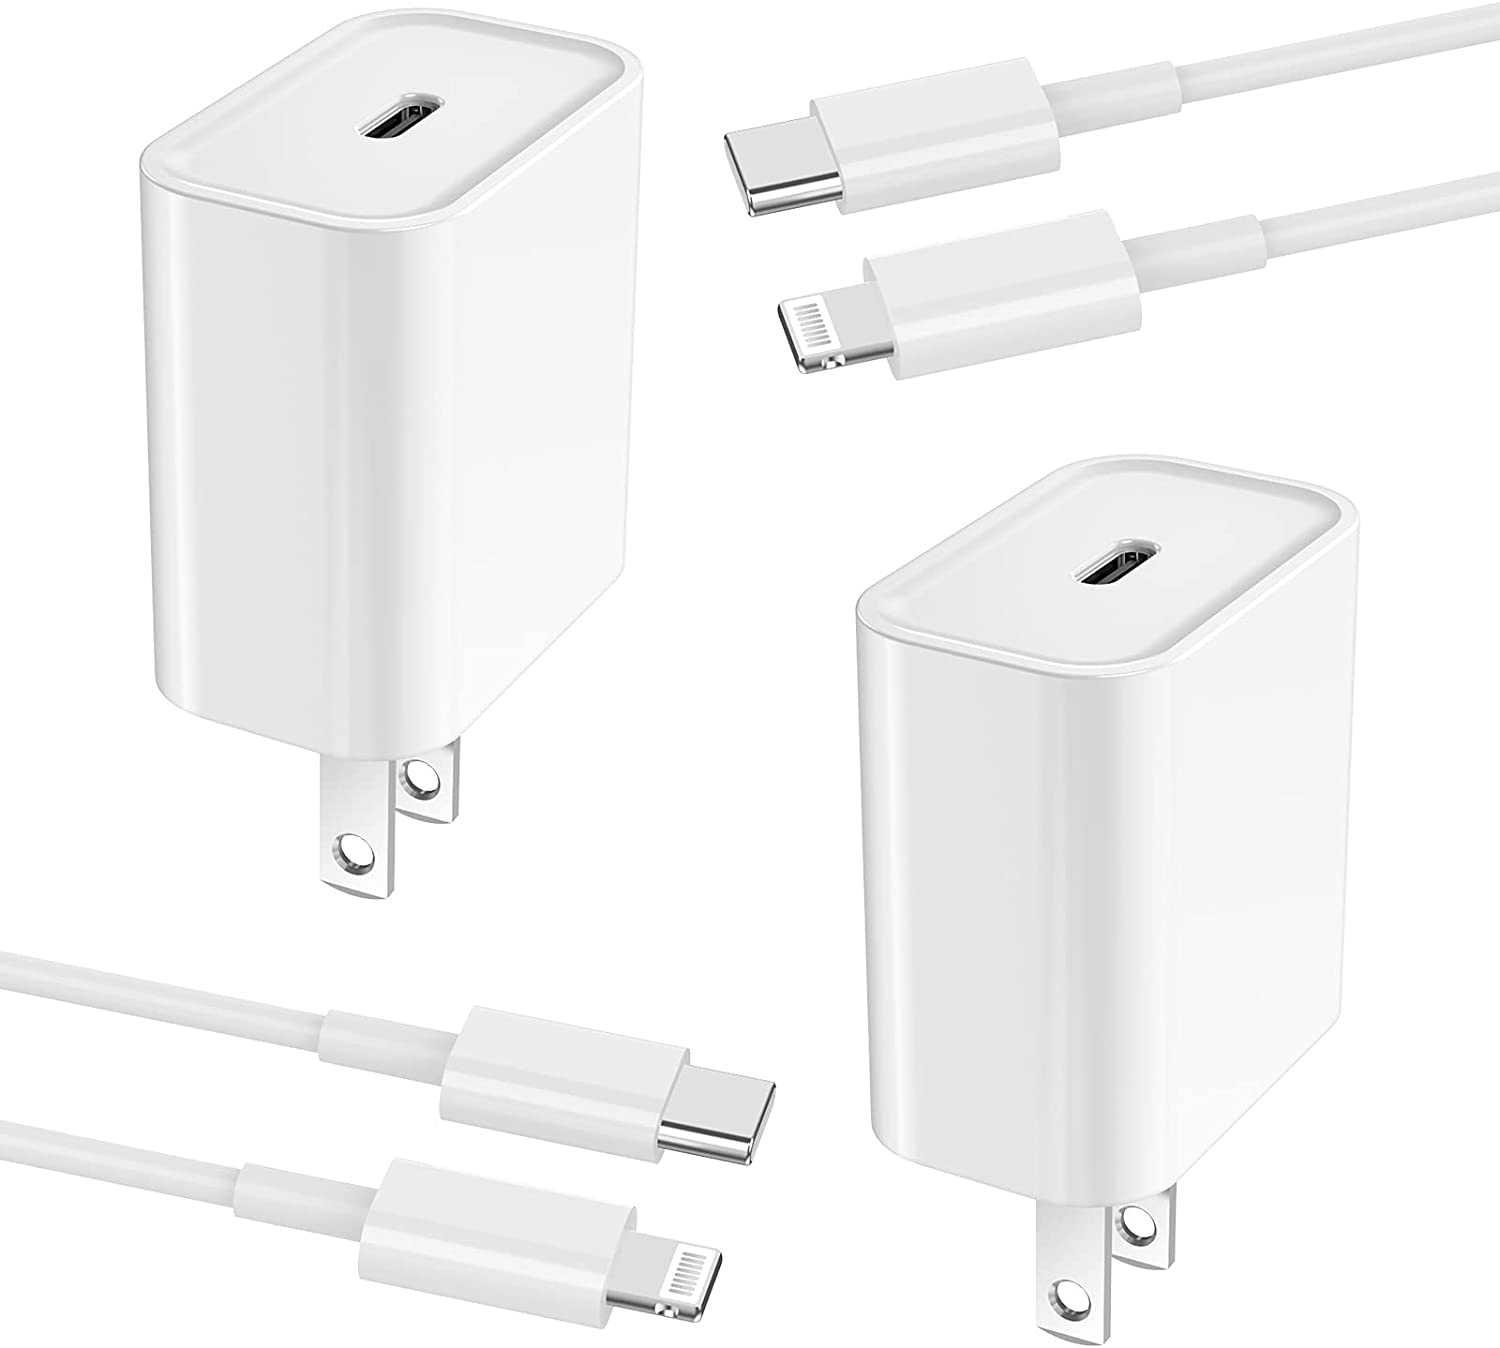 [Apple MFi Certified] iPhone Fast Charger, Assrid 2-Pack 20W Type C Power Delivery Wall Charger Travel Plug & 6FT USB C to Lightning Quick Charge Sync Cable for iPhone 12/11/XS/XR/X 8/iPad/AirPods Pro